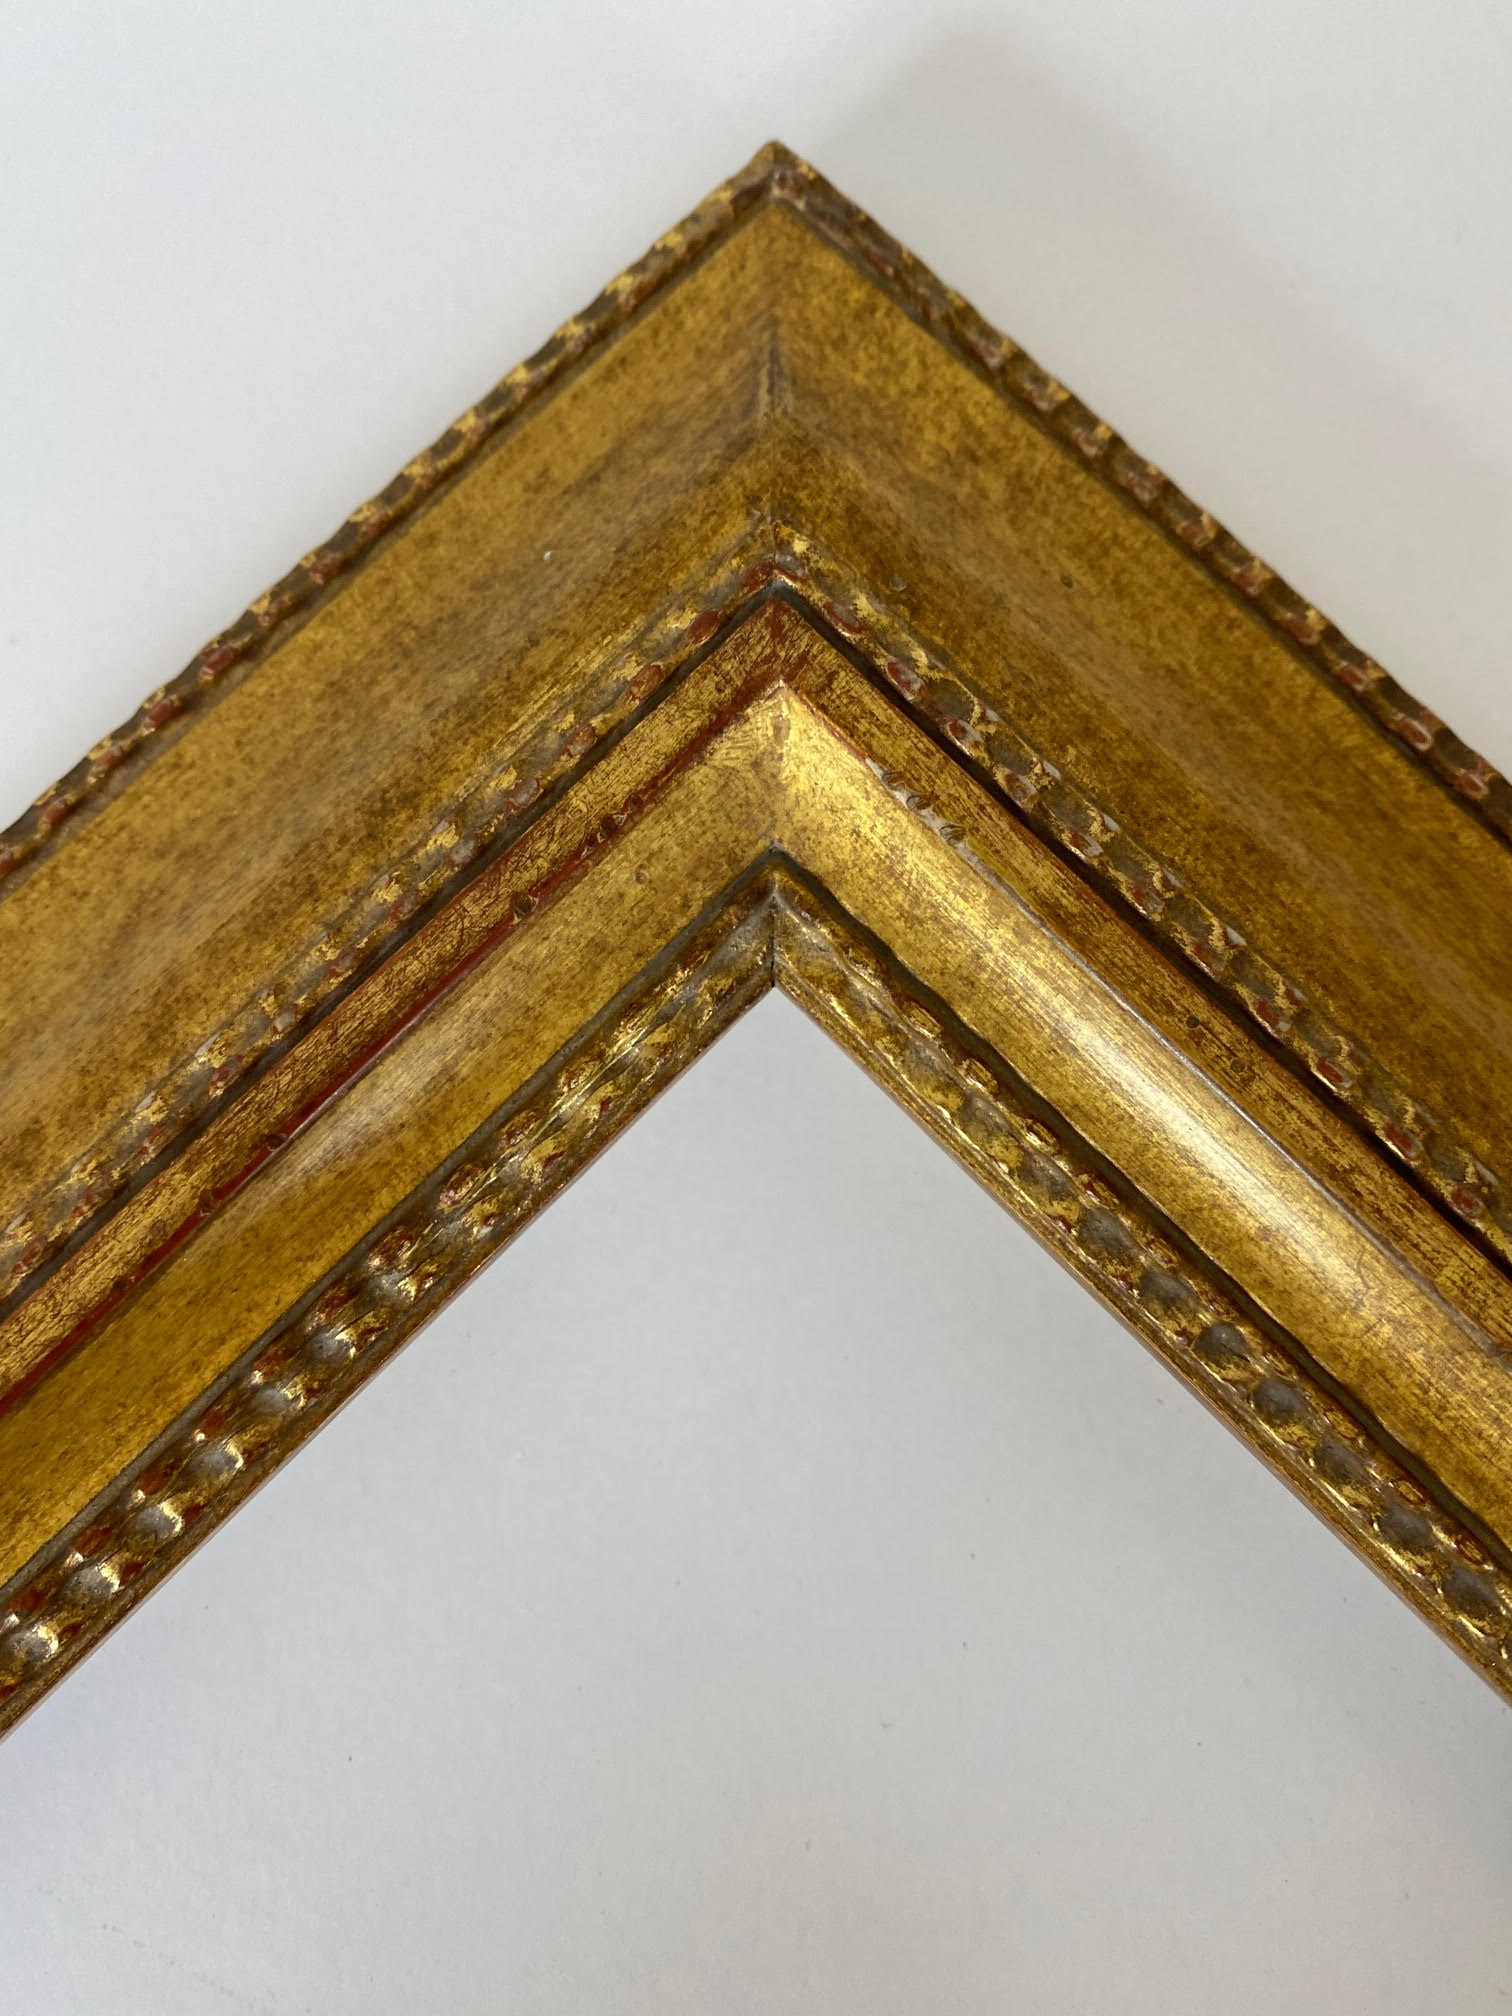 2.5 inch 22k gold leaf Dutch frame with light red rub and brown washed patina